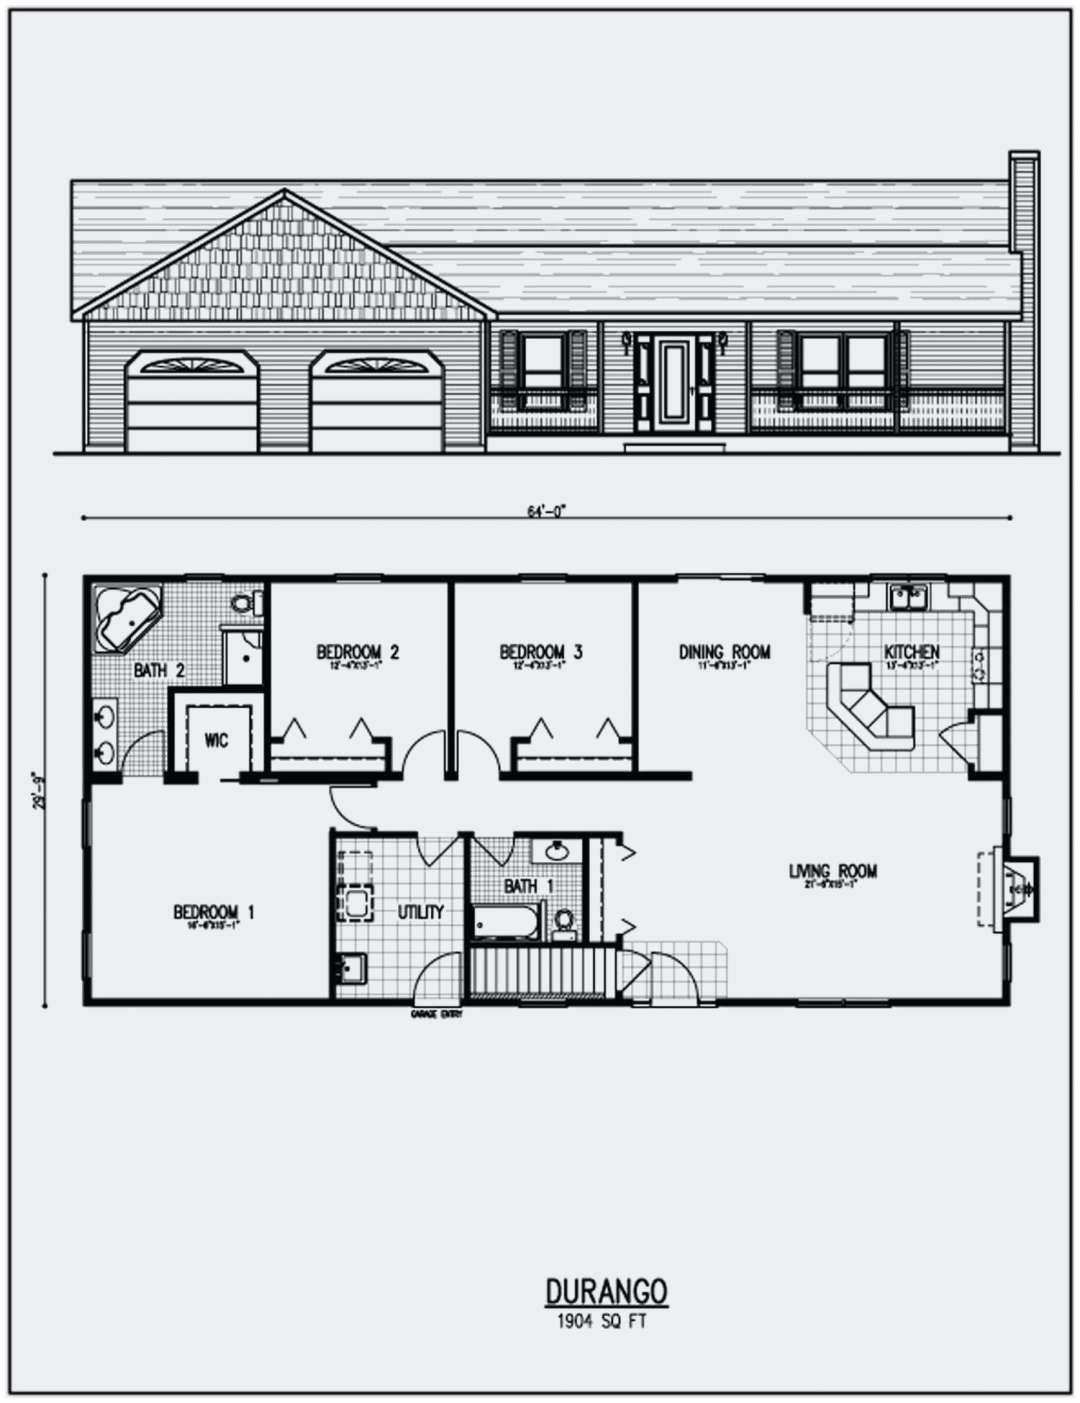 House Plans with Prices Beautiful House Design and Price Sri Lanka